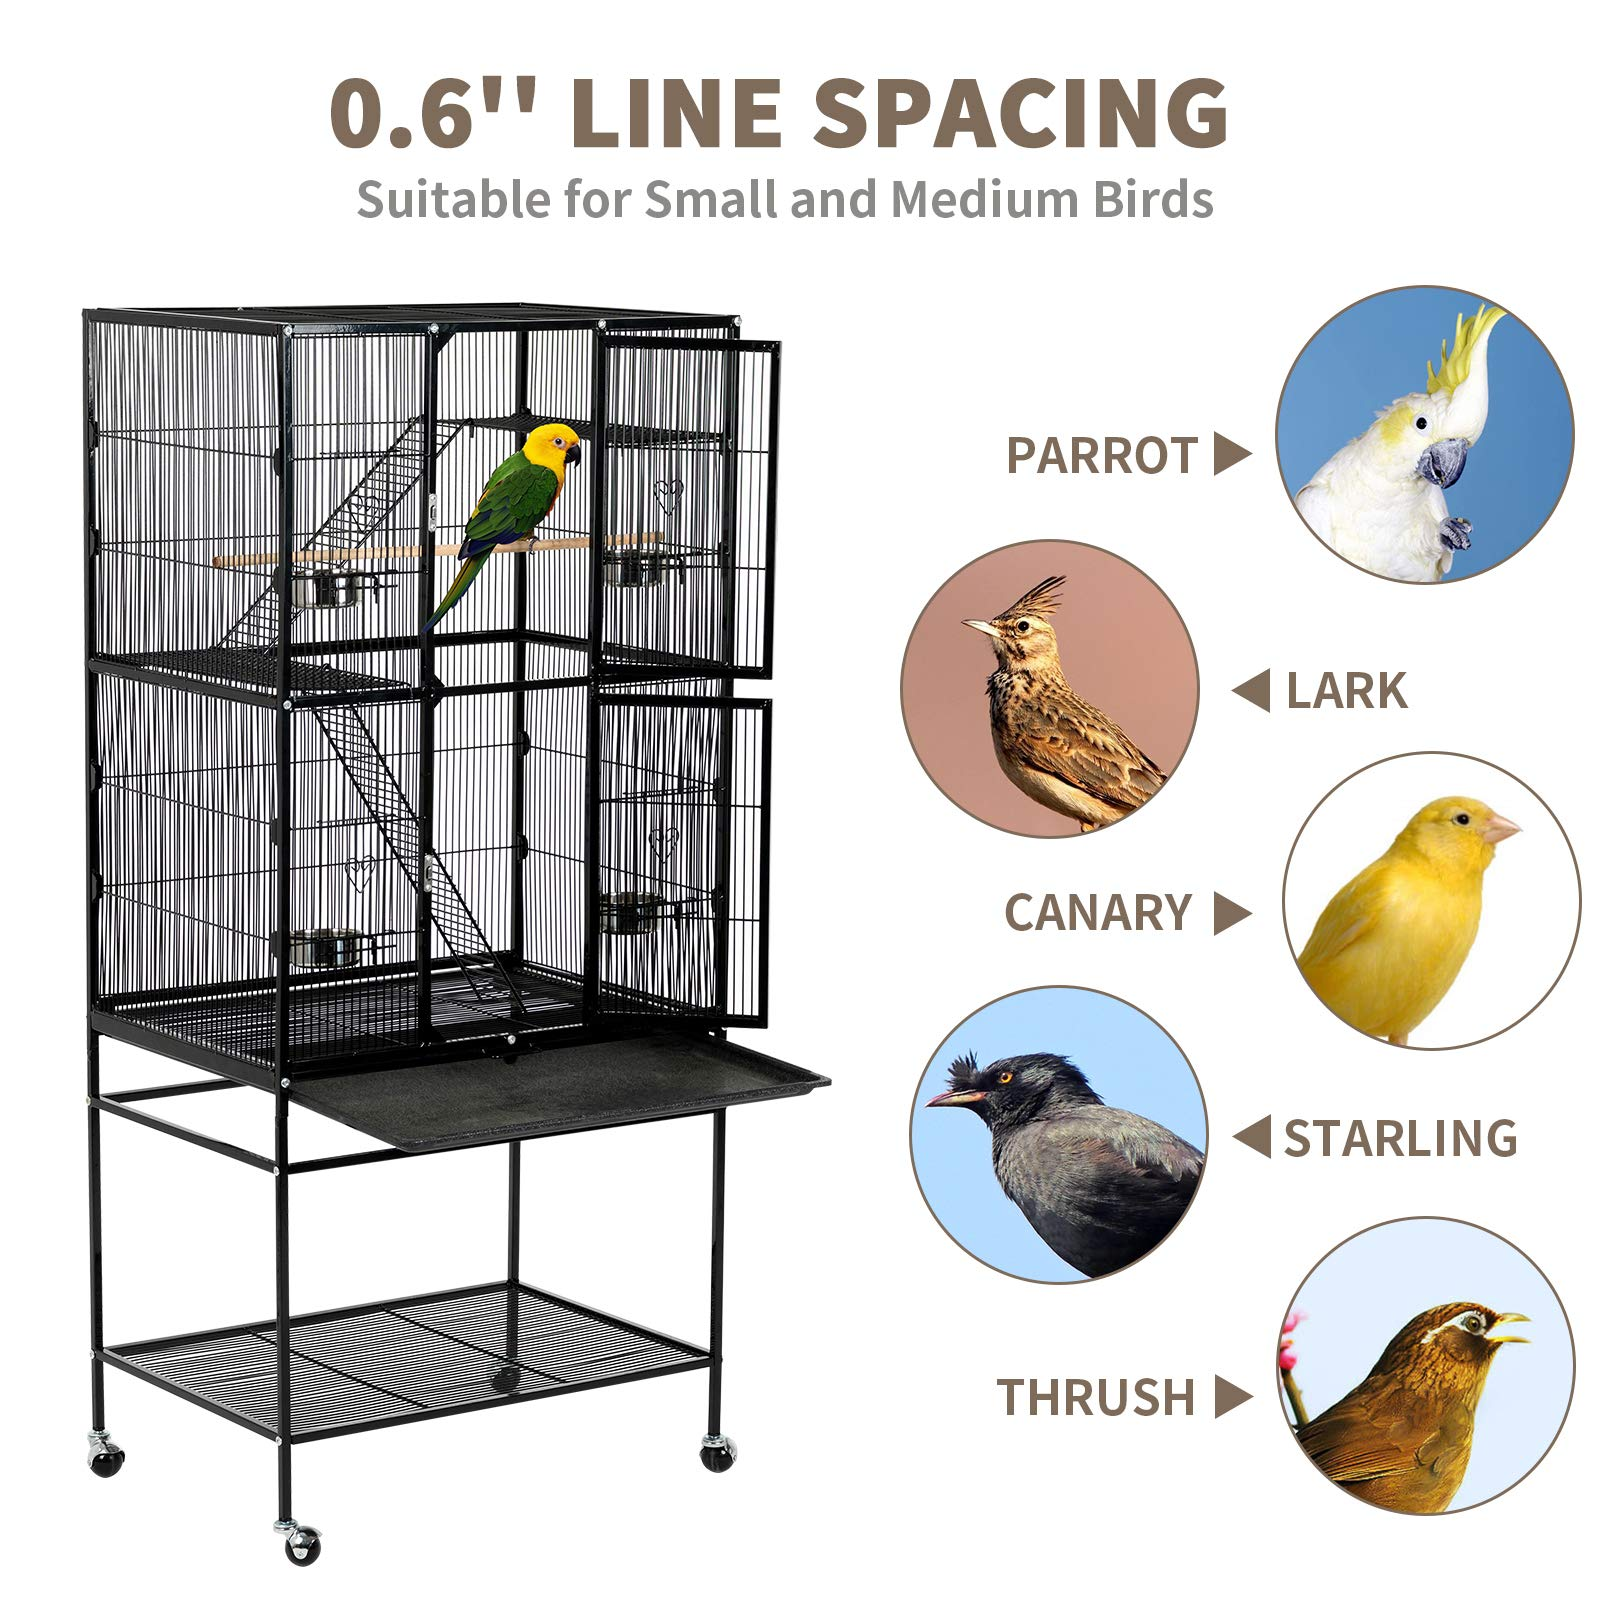 SUNCOO 63 Inch Large Bird Cage Heavy Duty Flight Cage Wrought Iron Aviary for Parrot Budgie Parakeet Cockatoo with Wooden Perch Stairs Steel Bowl Storage Shelf Rolling Stand Wheels by SUNCOO